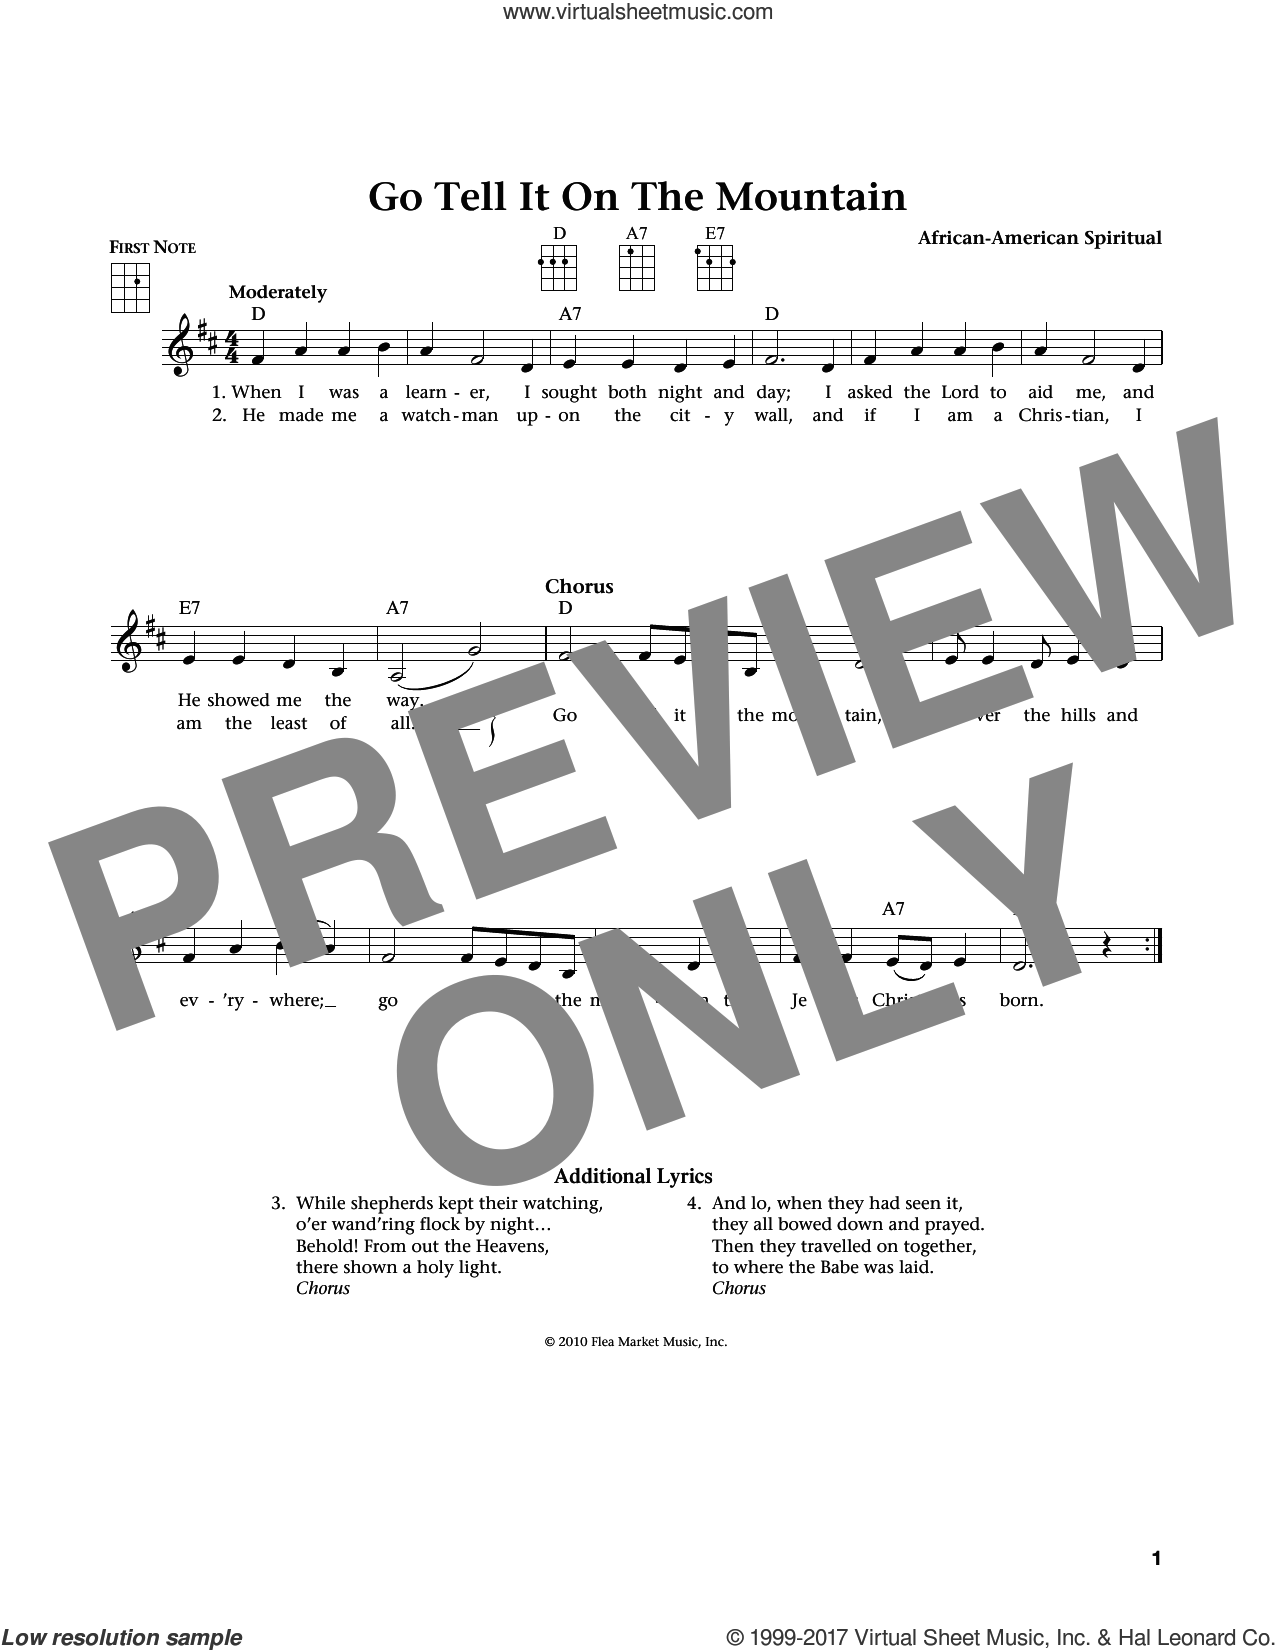 Go, Tell It On The Mountain sheet music for ukulele by John W. Work, Jr. and Miscellaneous. Score Image Preview.